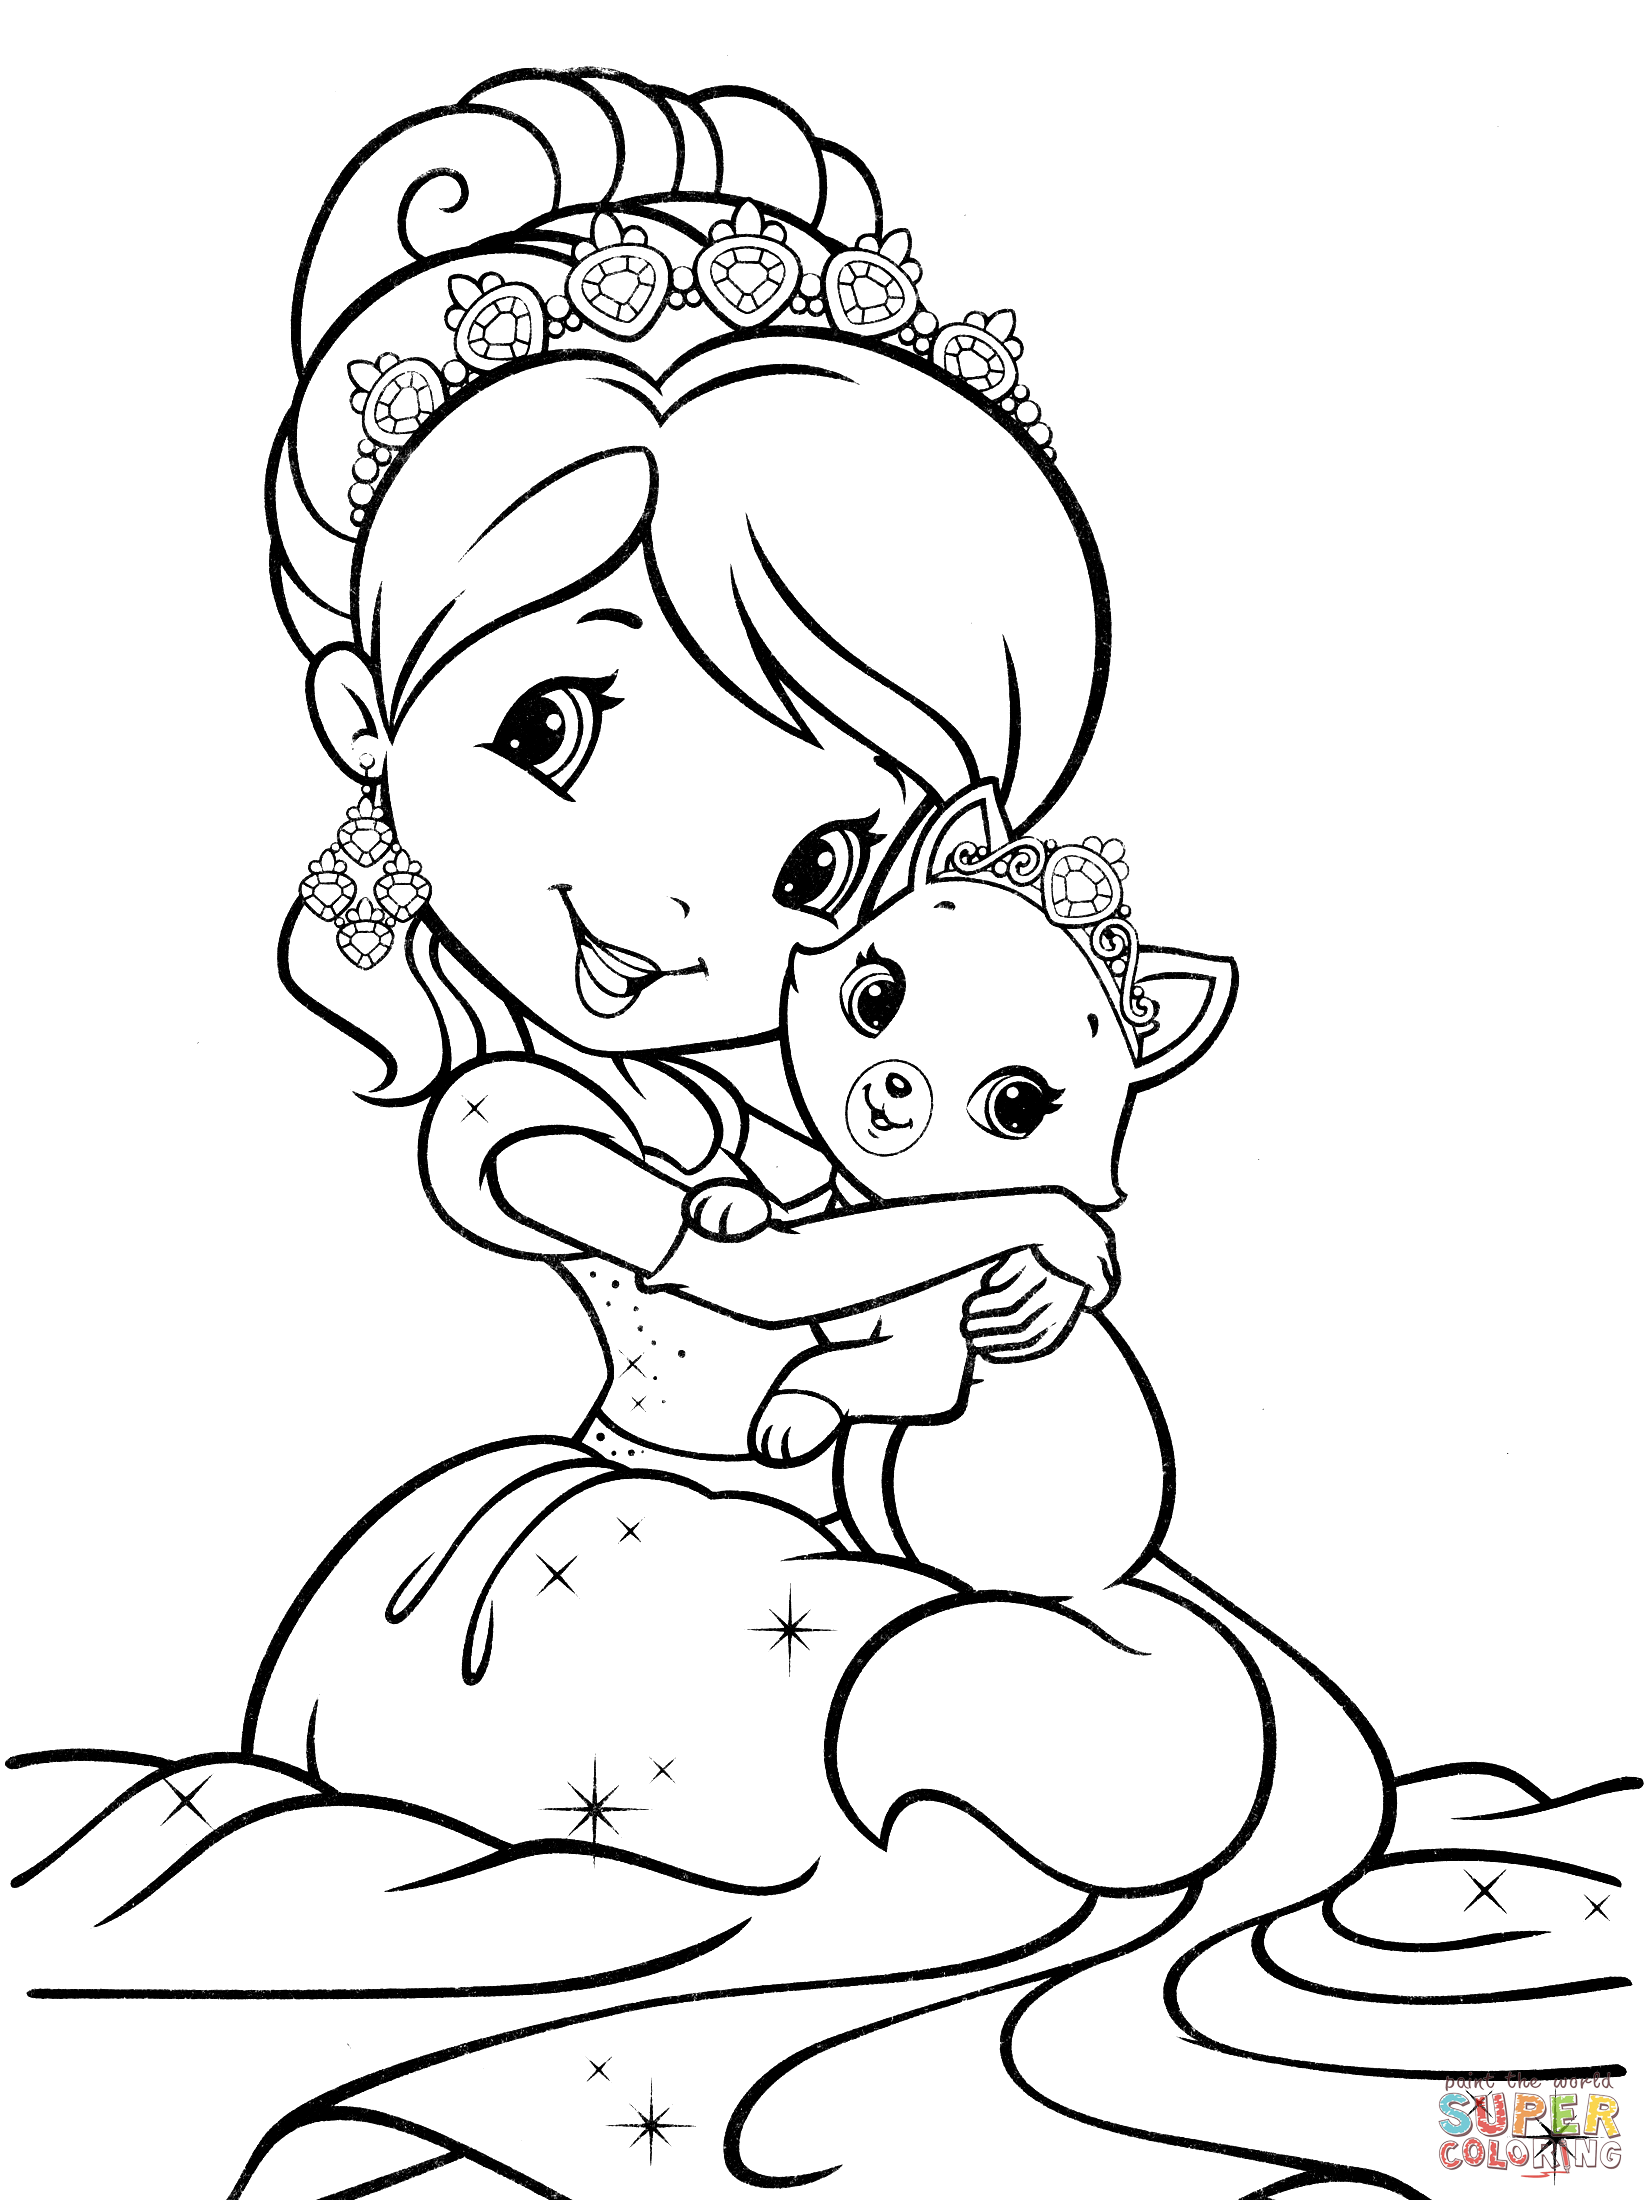 1646x2200 Strawberry Shortcake Mermaid Coloring Page Free Printable